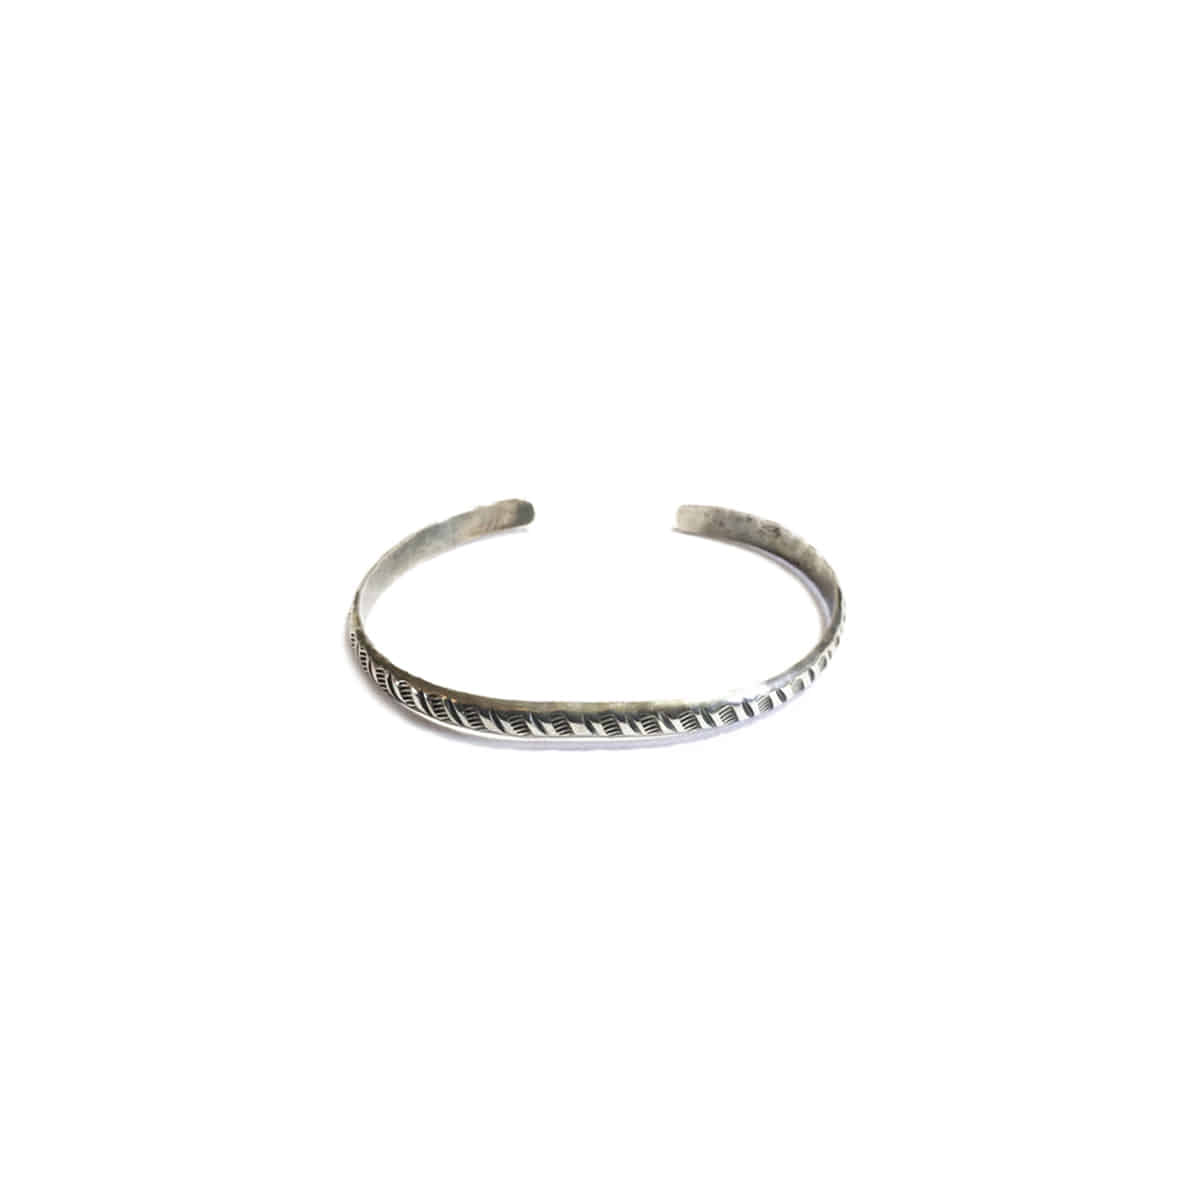 [NORTH WORKS] 900 SILVER ROUND CUFF BANGLE 'W-042'